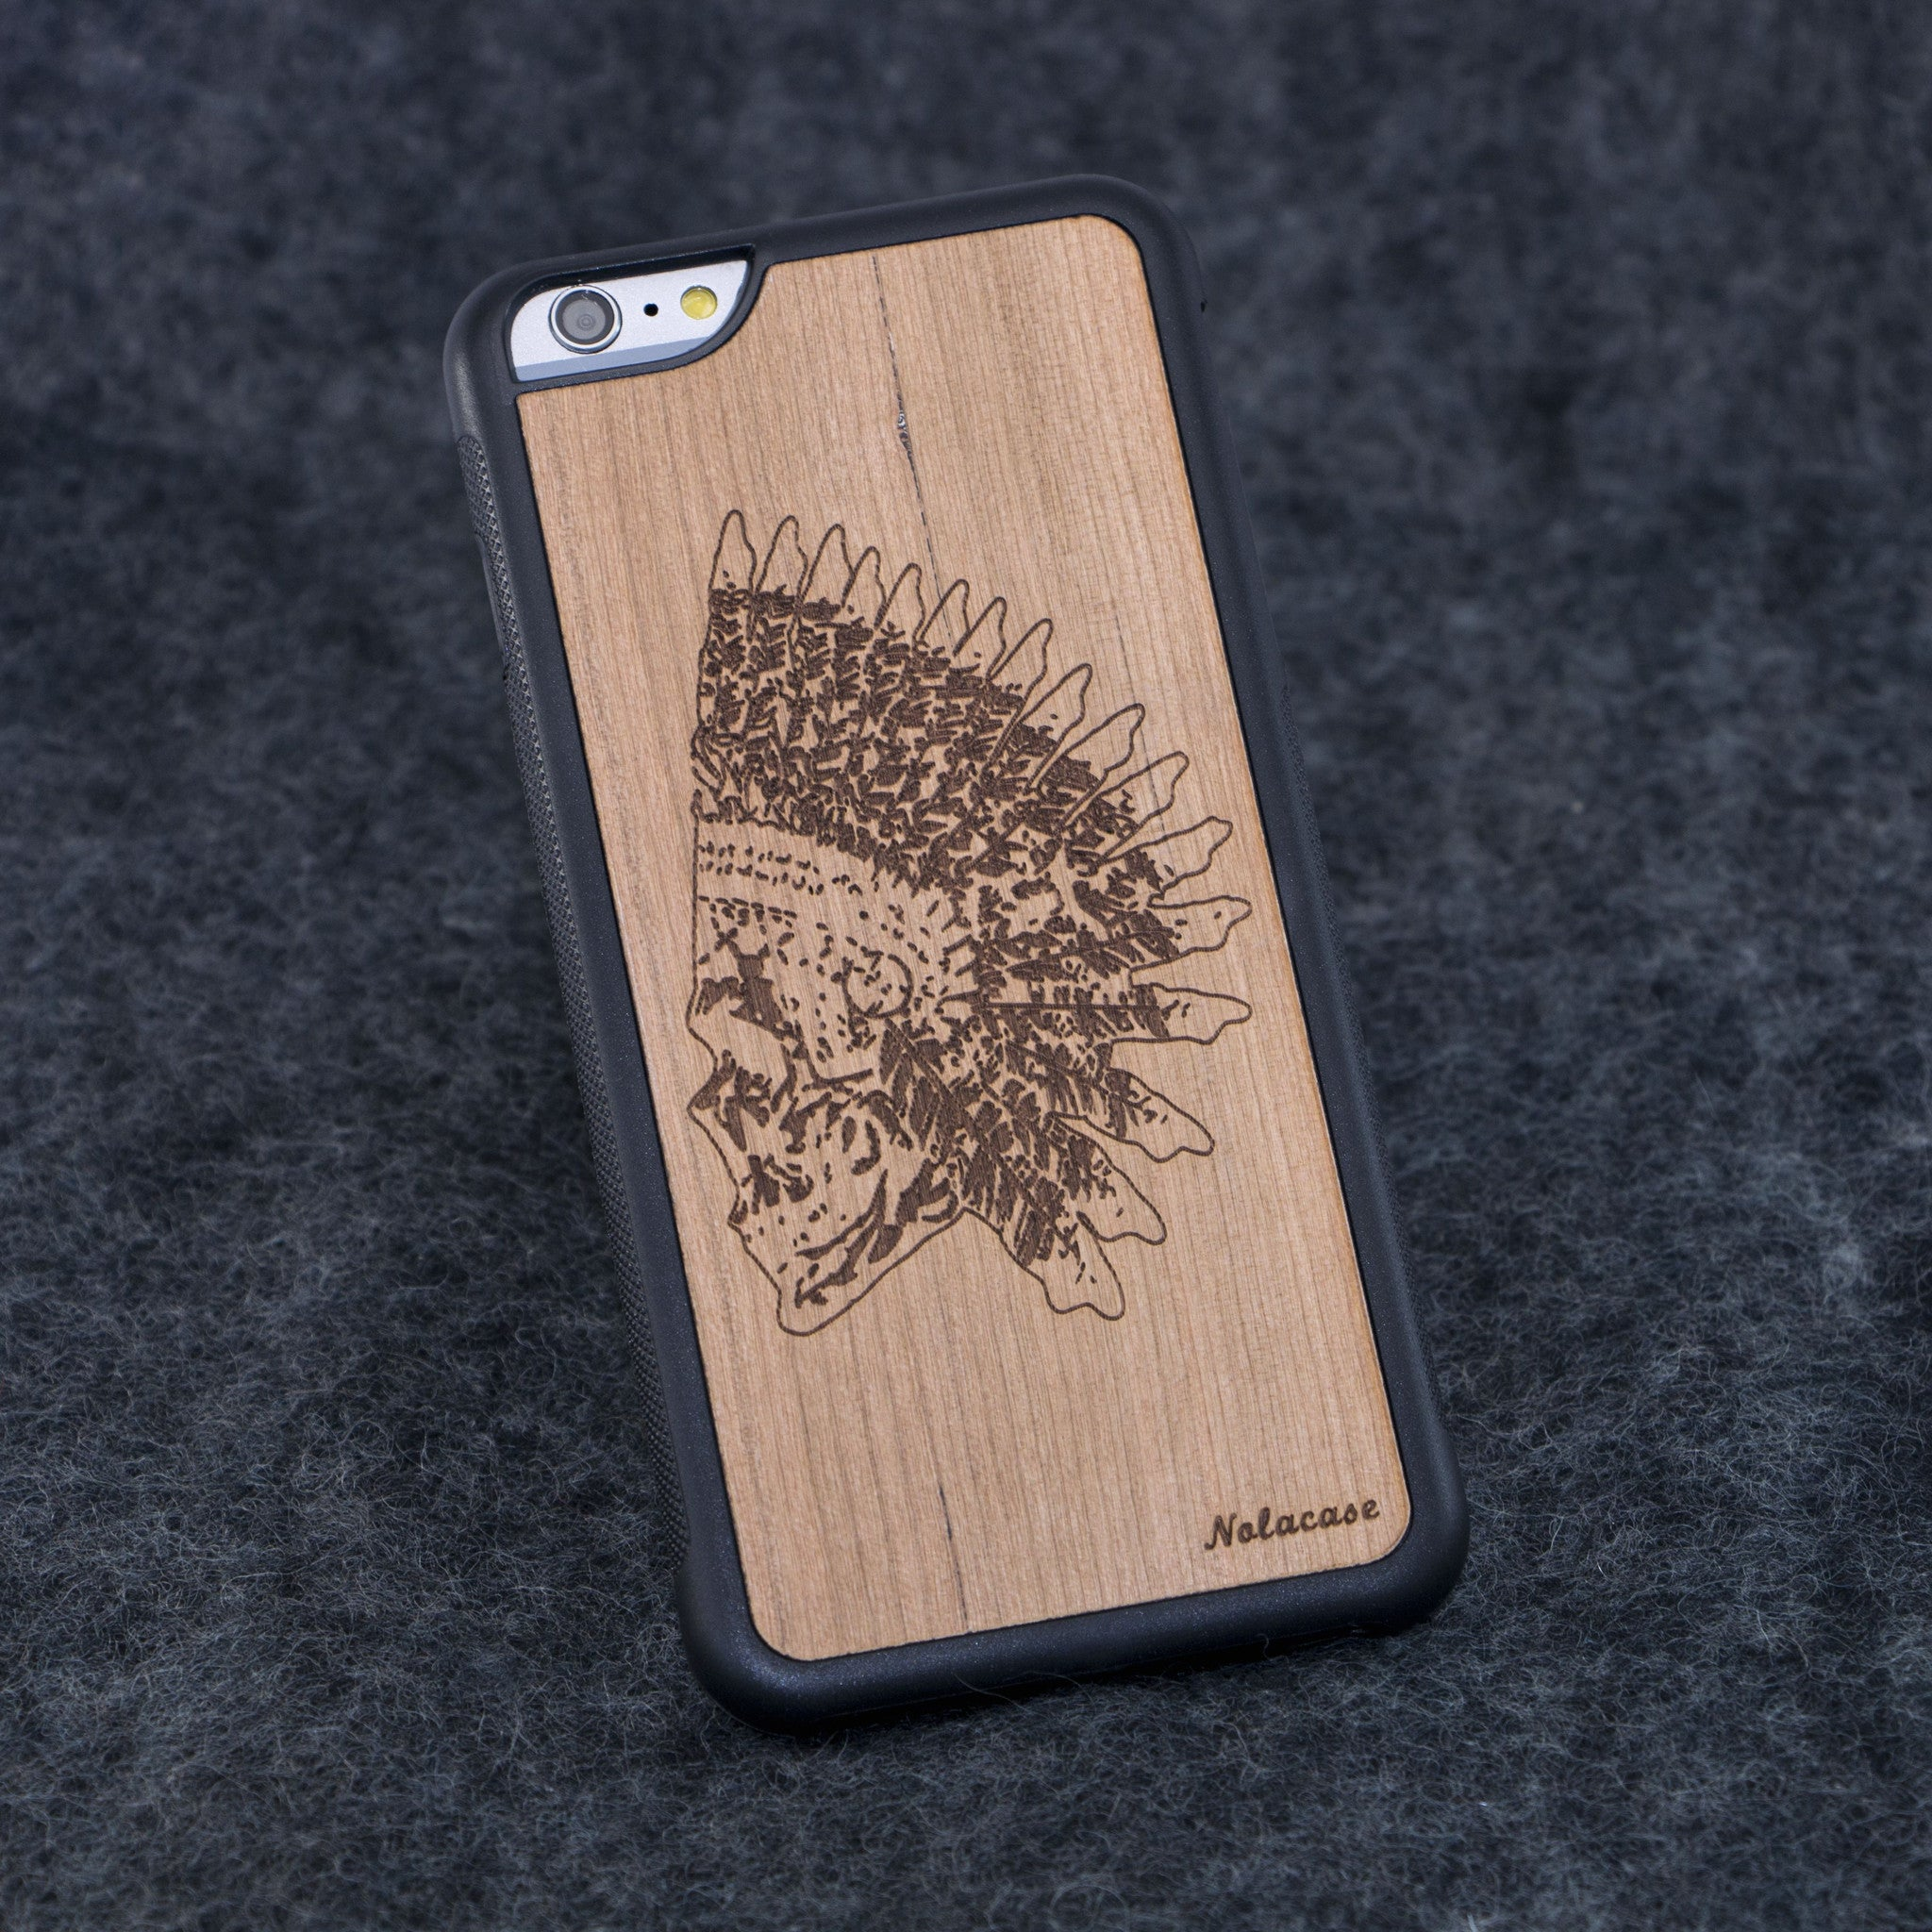 iPhone 6+ Indian Skull Traveler Wood Case - NOLACASE